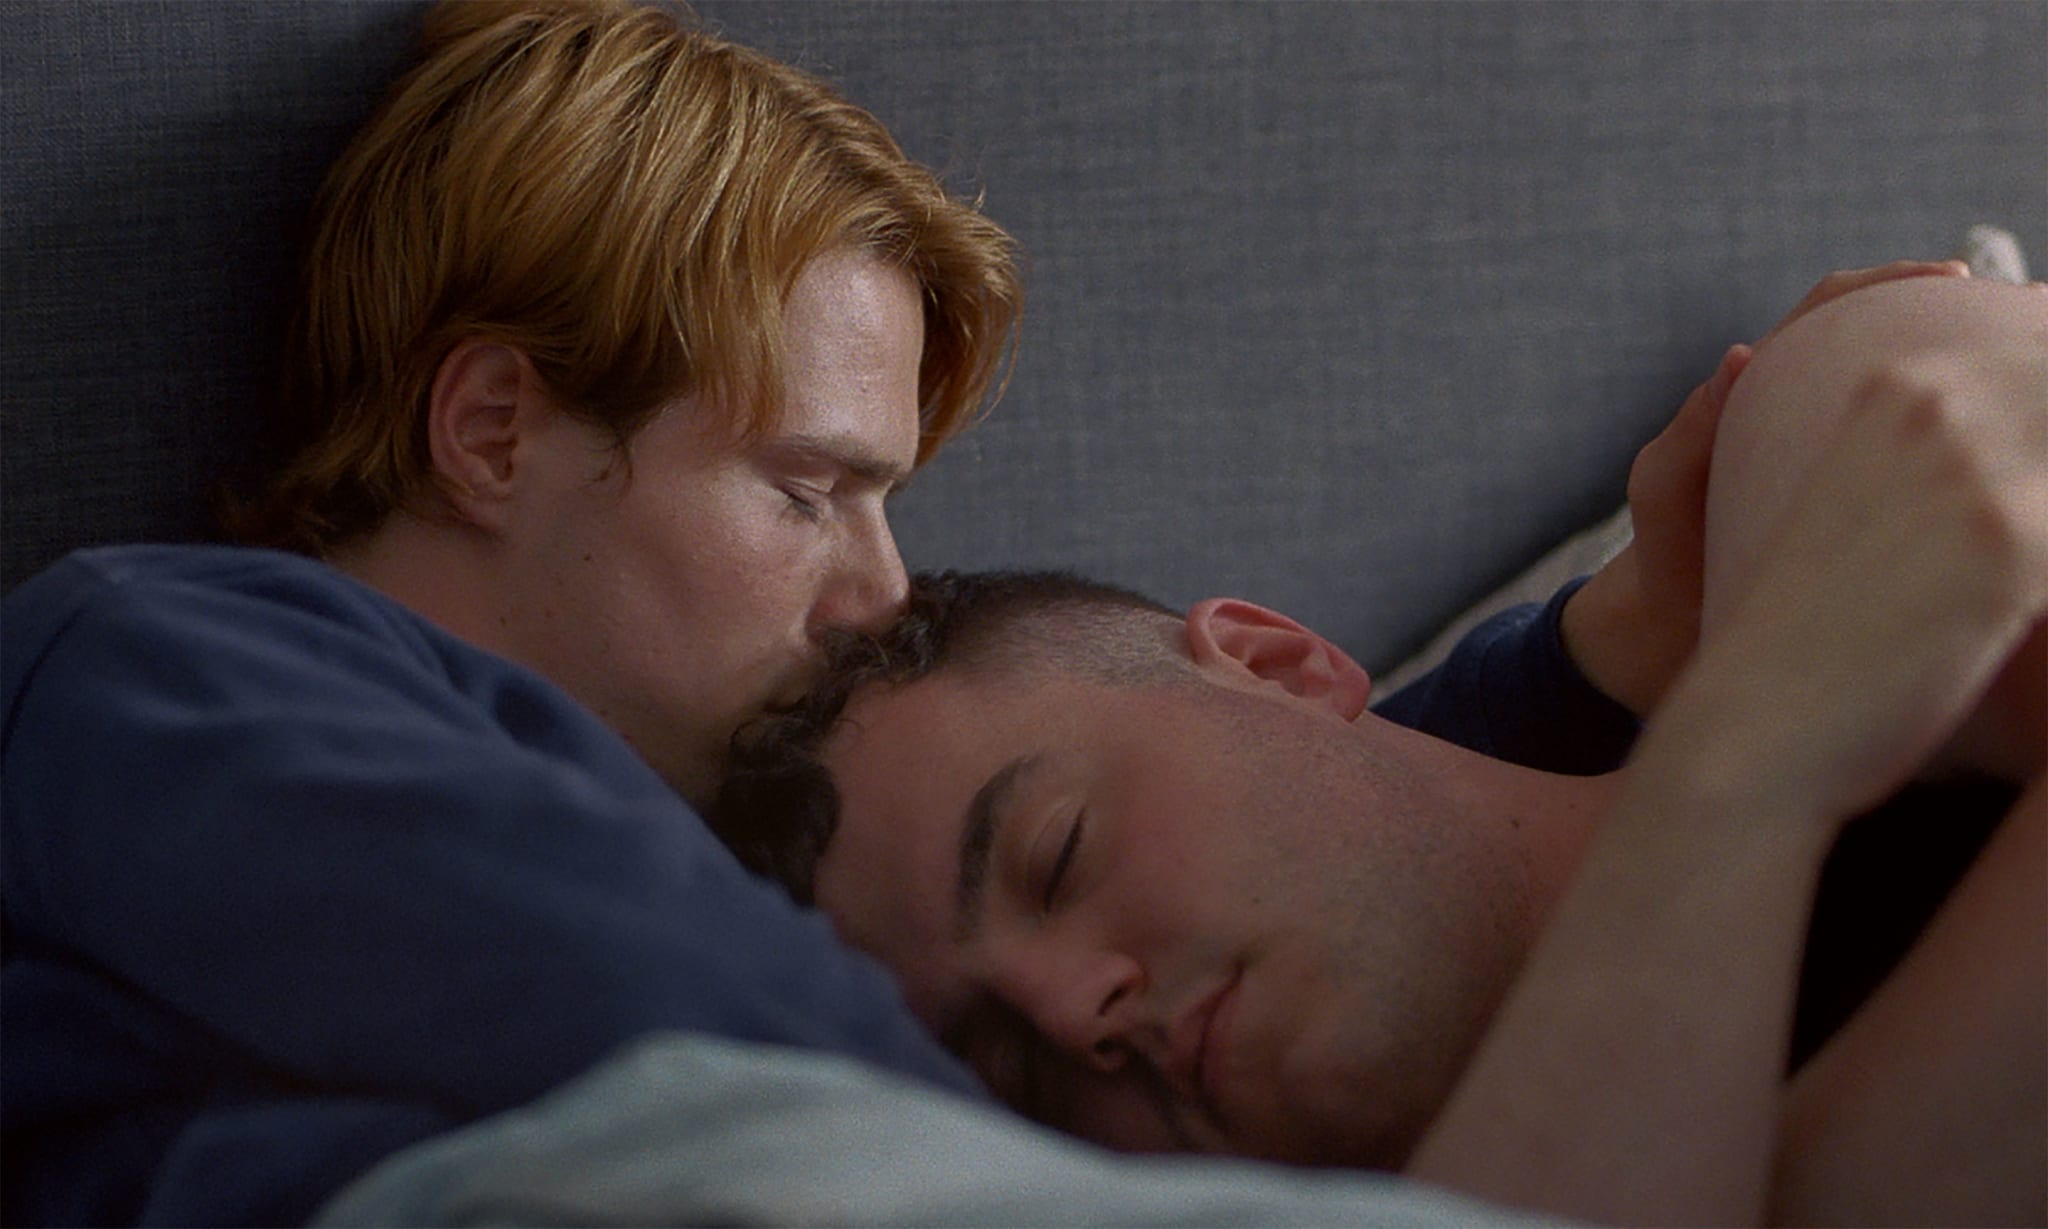 One man comforting another man in bed.